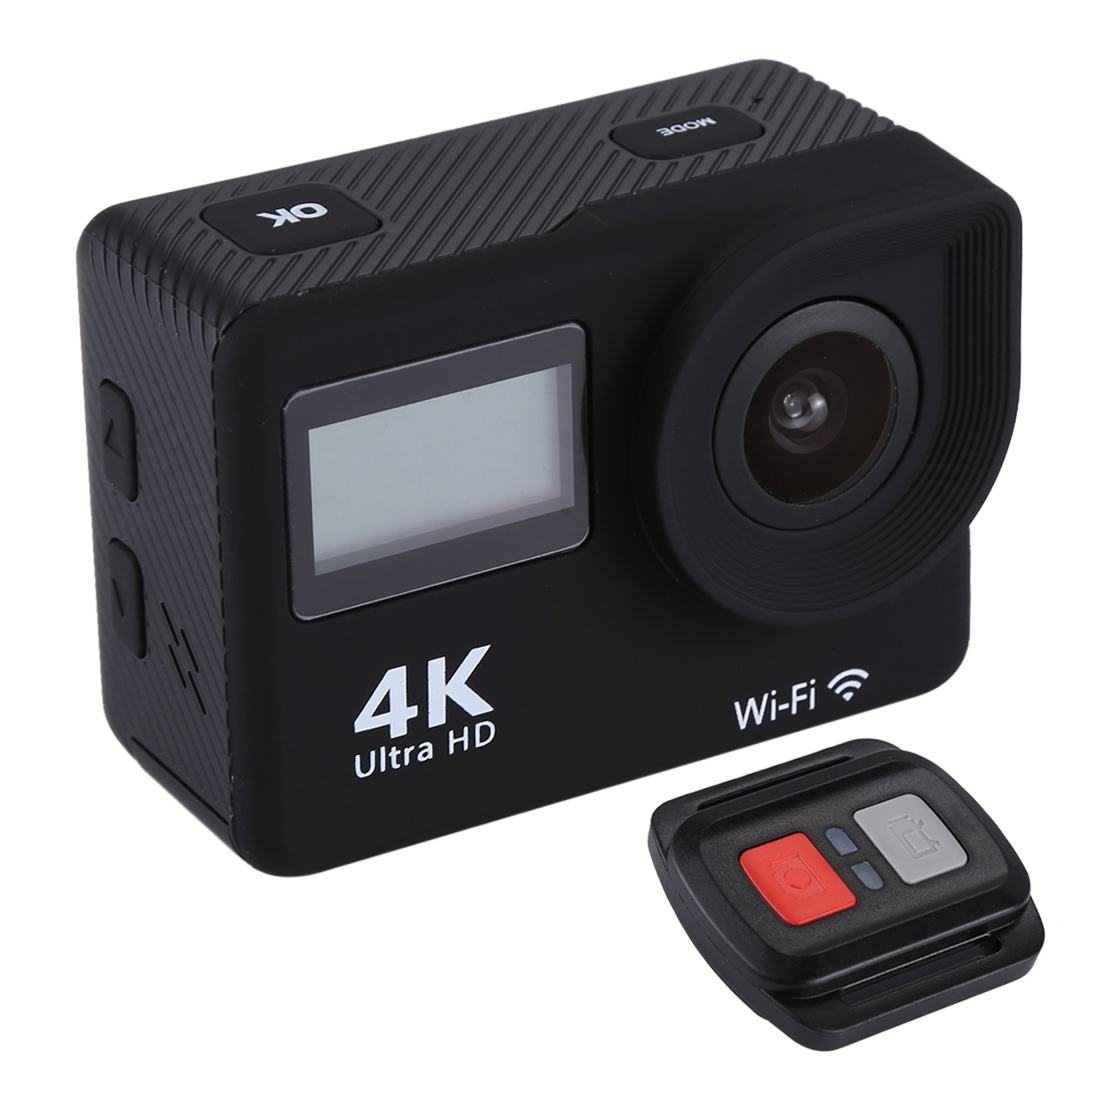 Dropshipping S300 HD 4K WiFi 12.0MP Sport Camera with Remote Control & 30m Waterproof Case